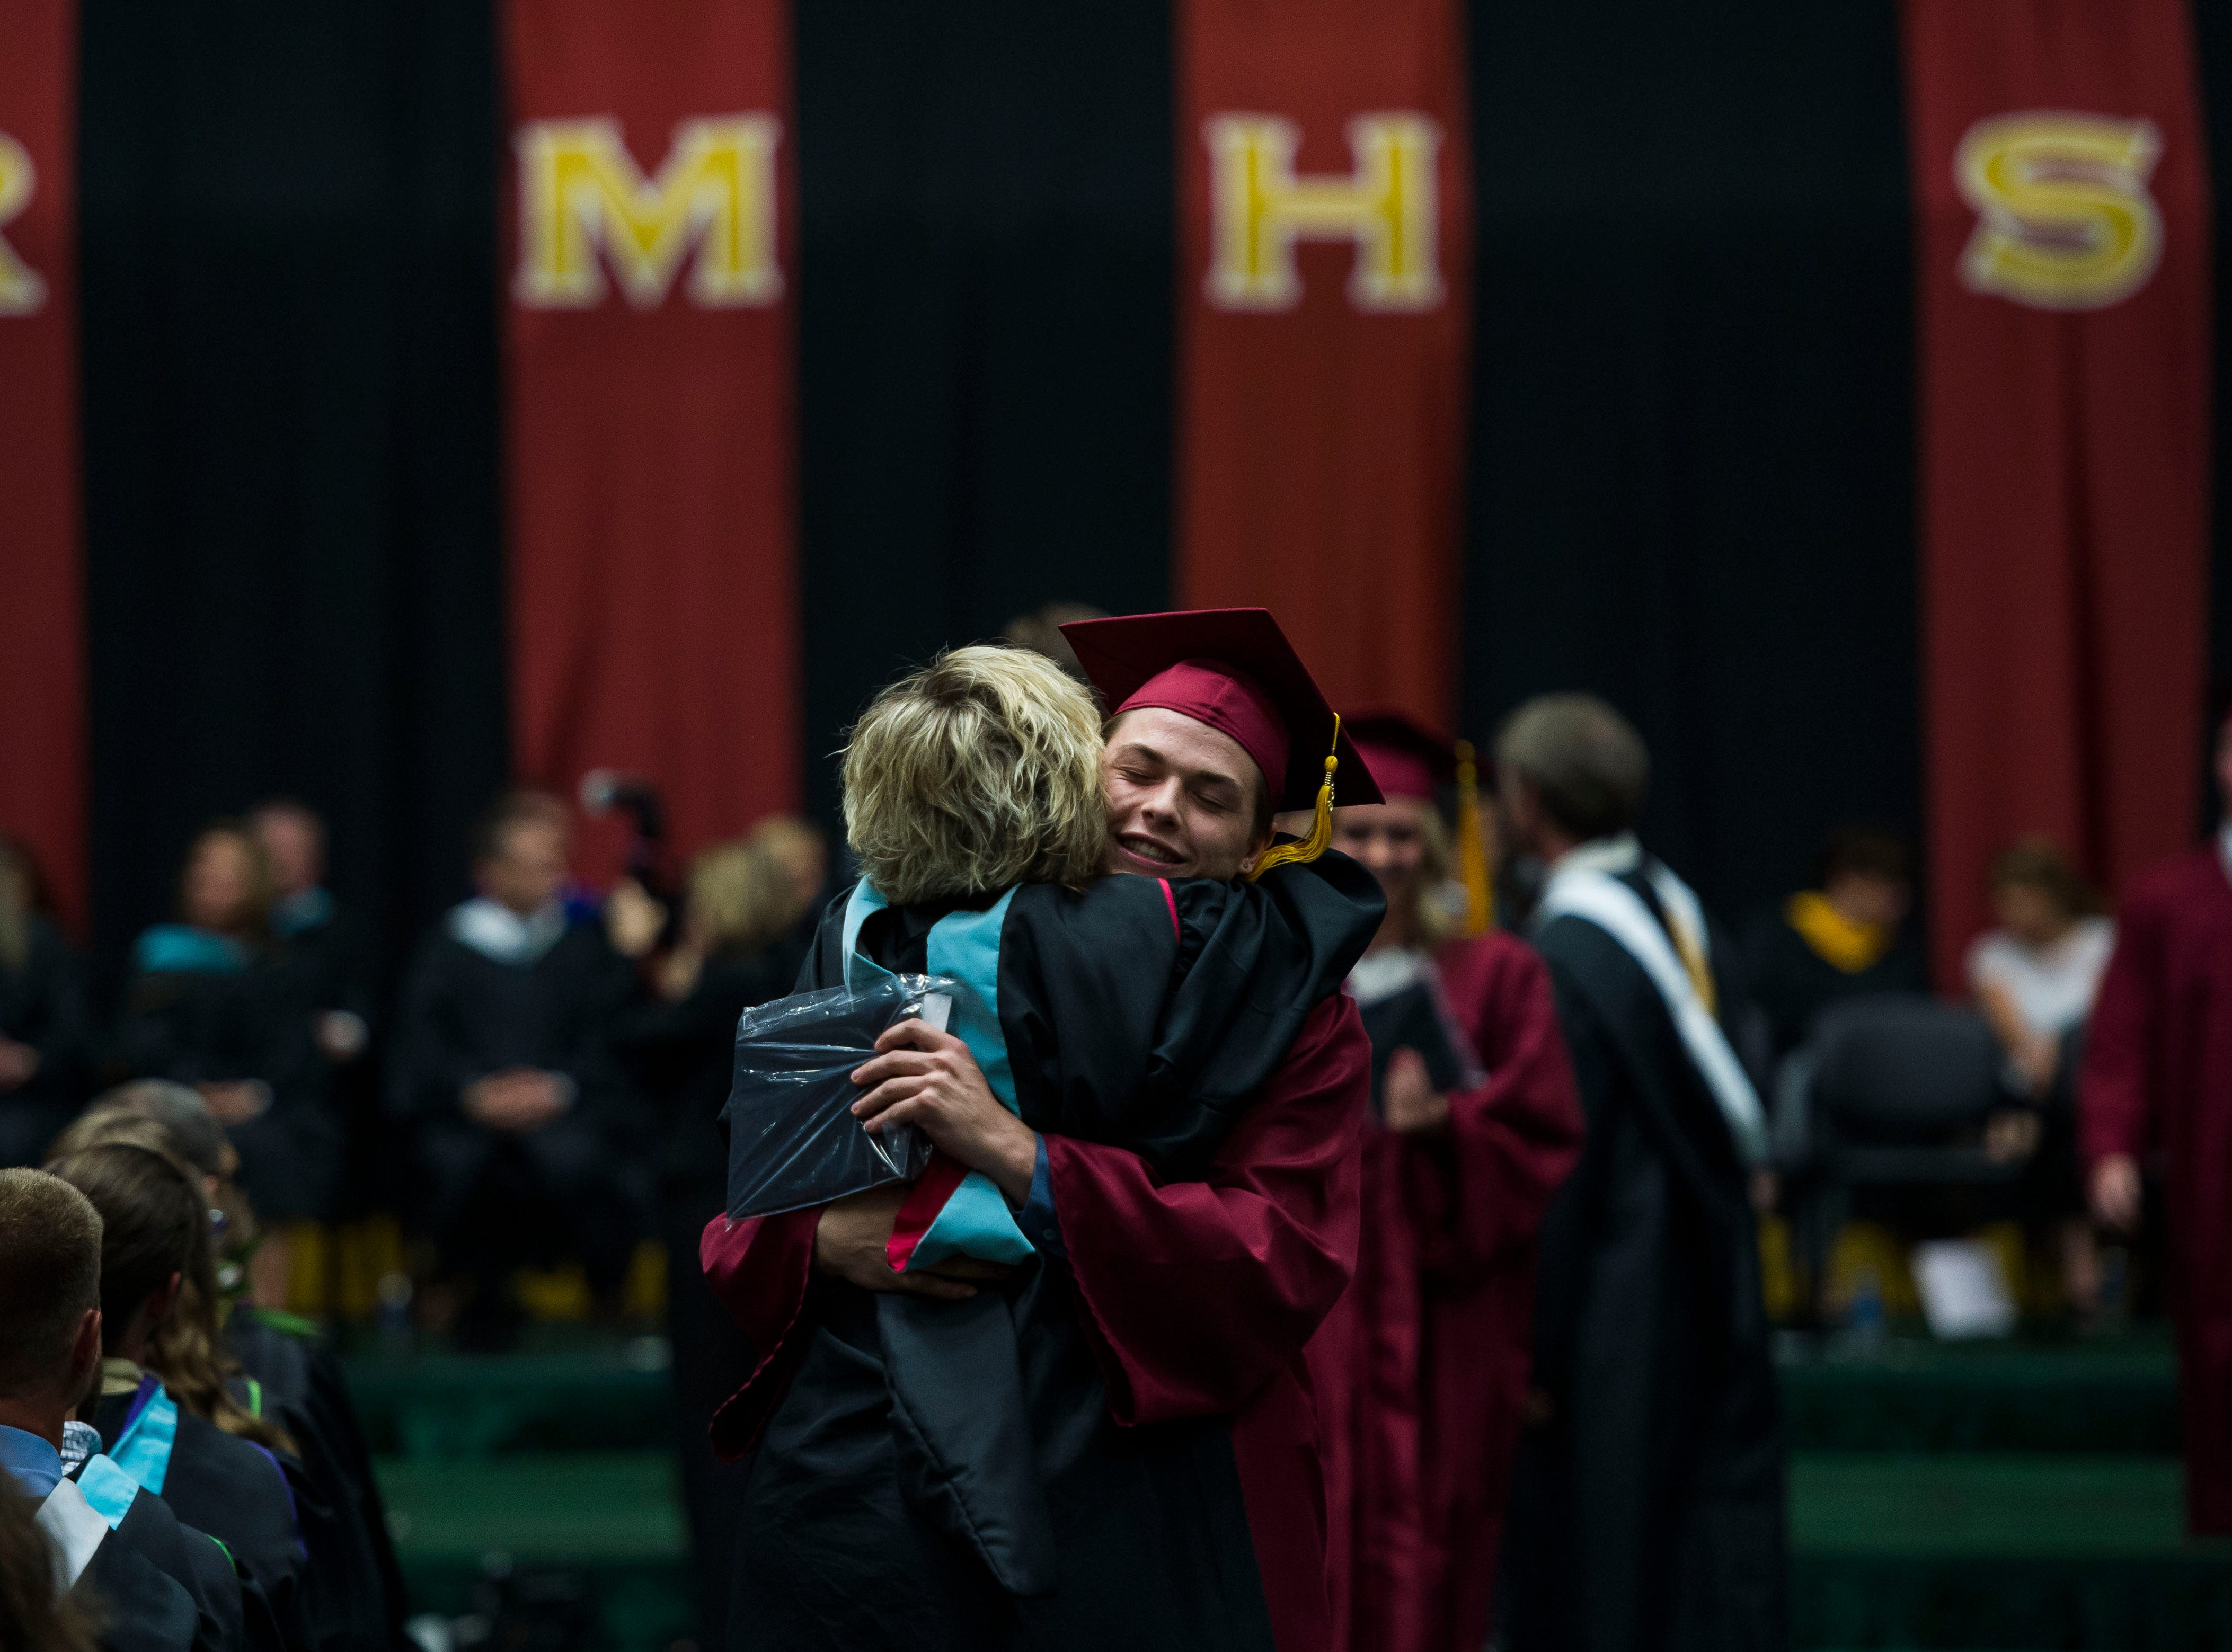 Rocky Mountain High School senior Conner Austin-Jones hugs teacher Ms. Laura Druse after receiving his diploma at his graduation ceremony on Friday, May 25, 2018, at Moby Arena in Fort Collins, Colo.